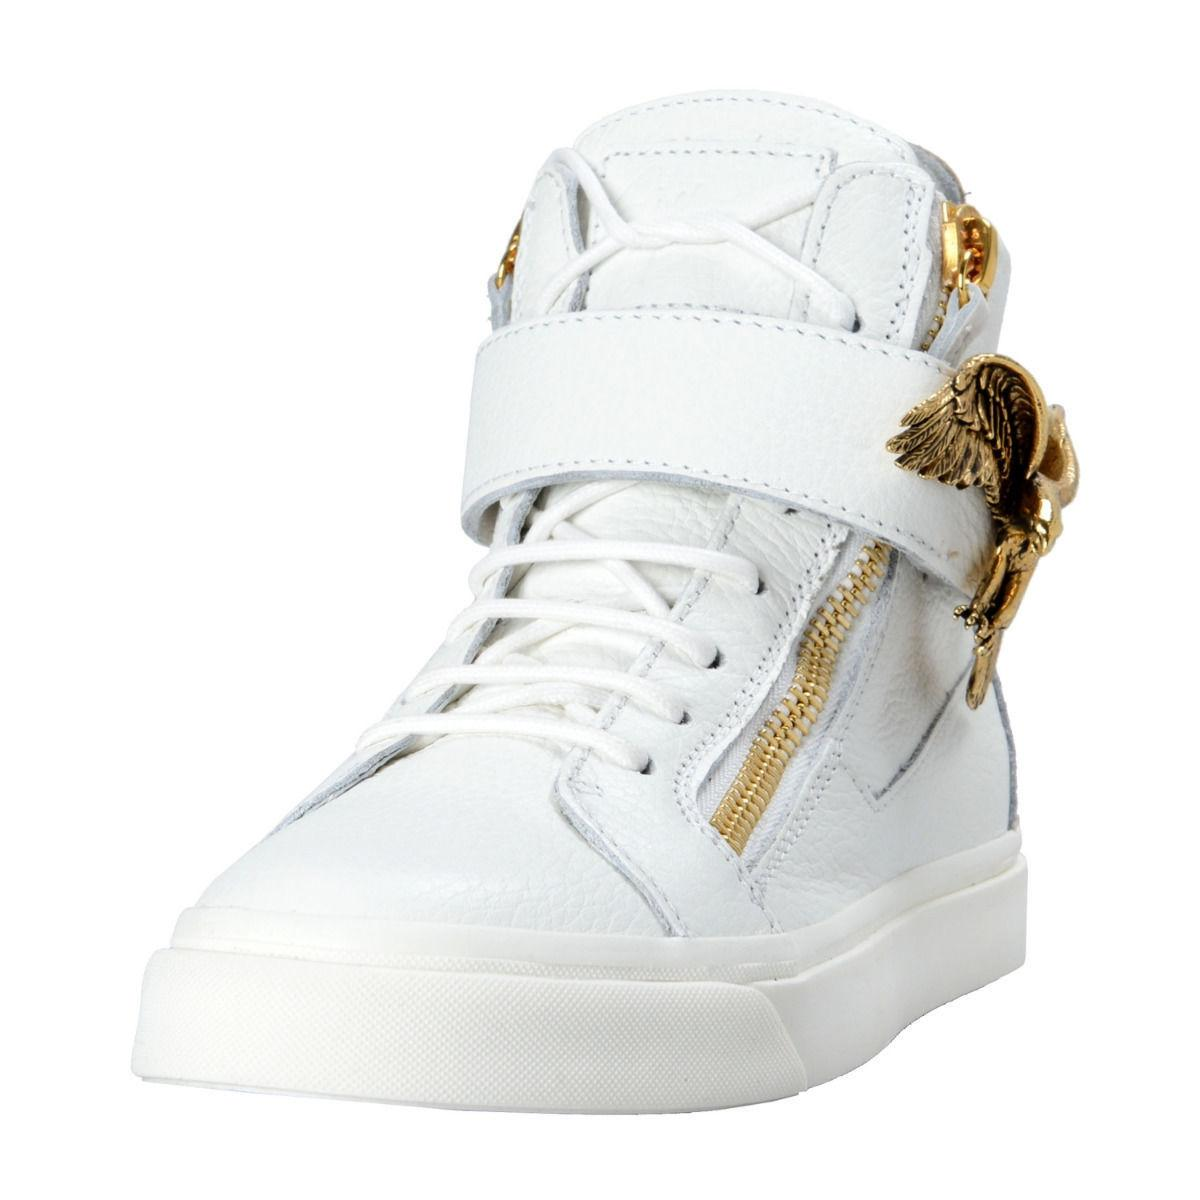 Giuseppe Zanotti Woman London Leather And Metallic Suede Sneakers Bright Size 39 v8Yj54kS